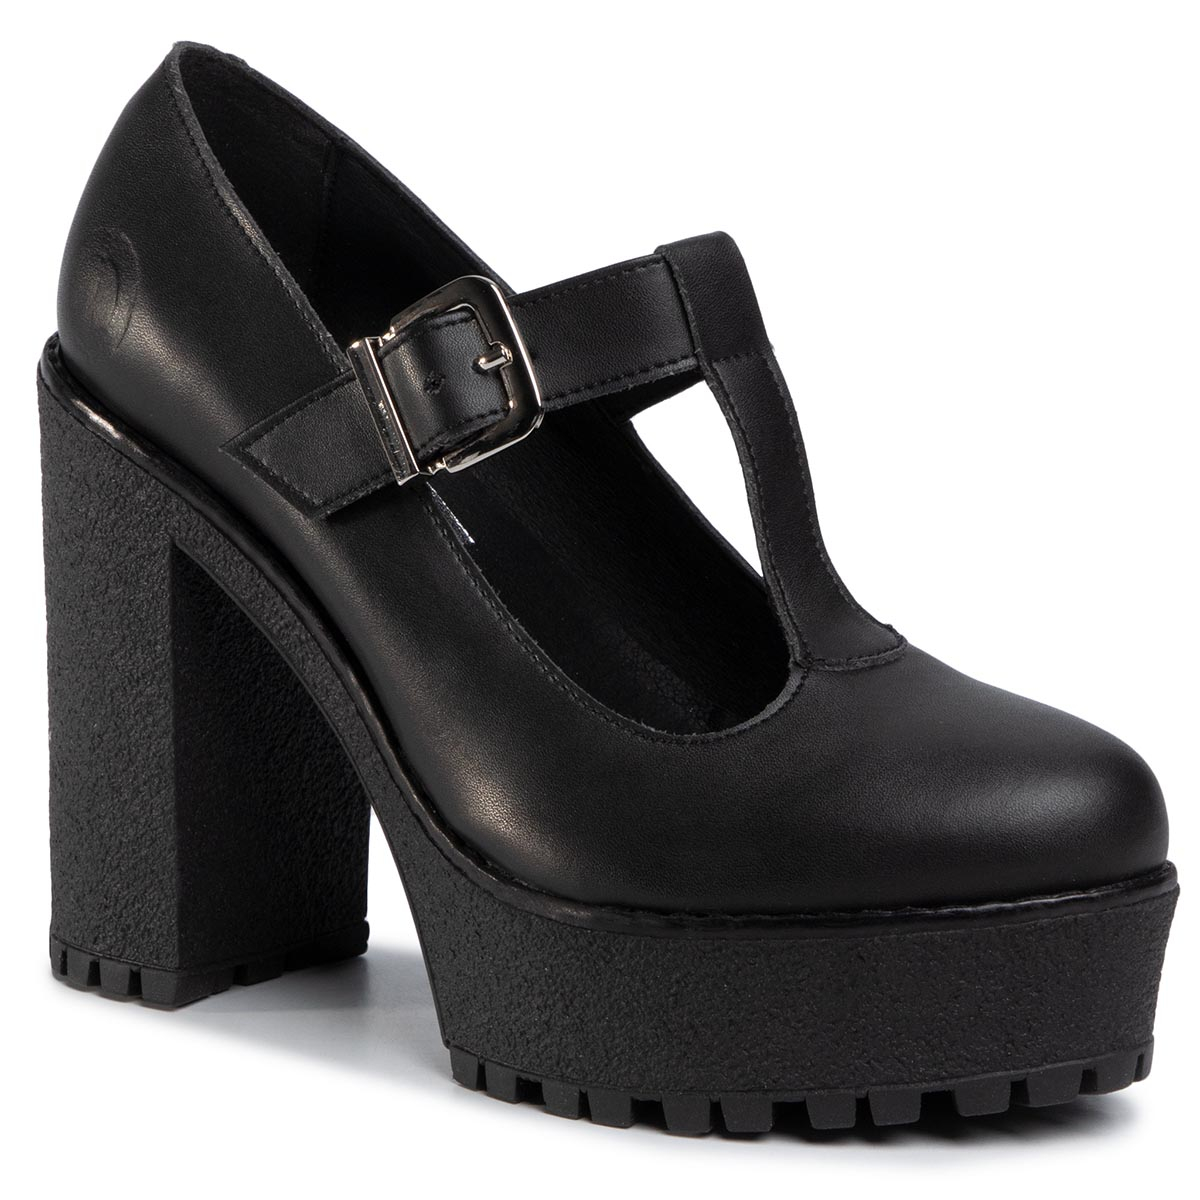 Image of Halbschuhe ALTERCORE - Lizzy Vegan Black